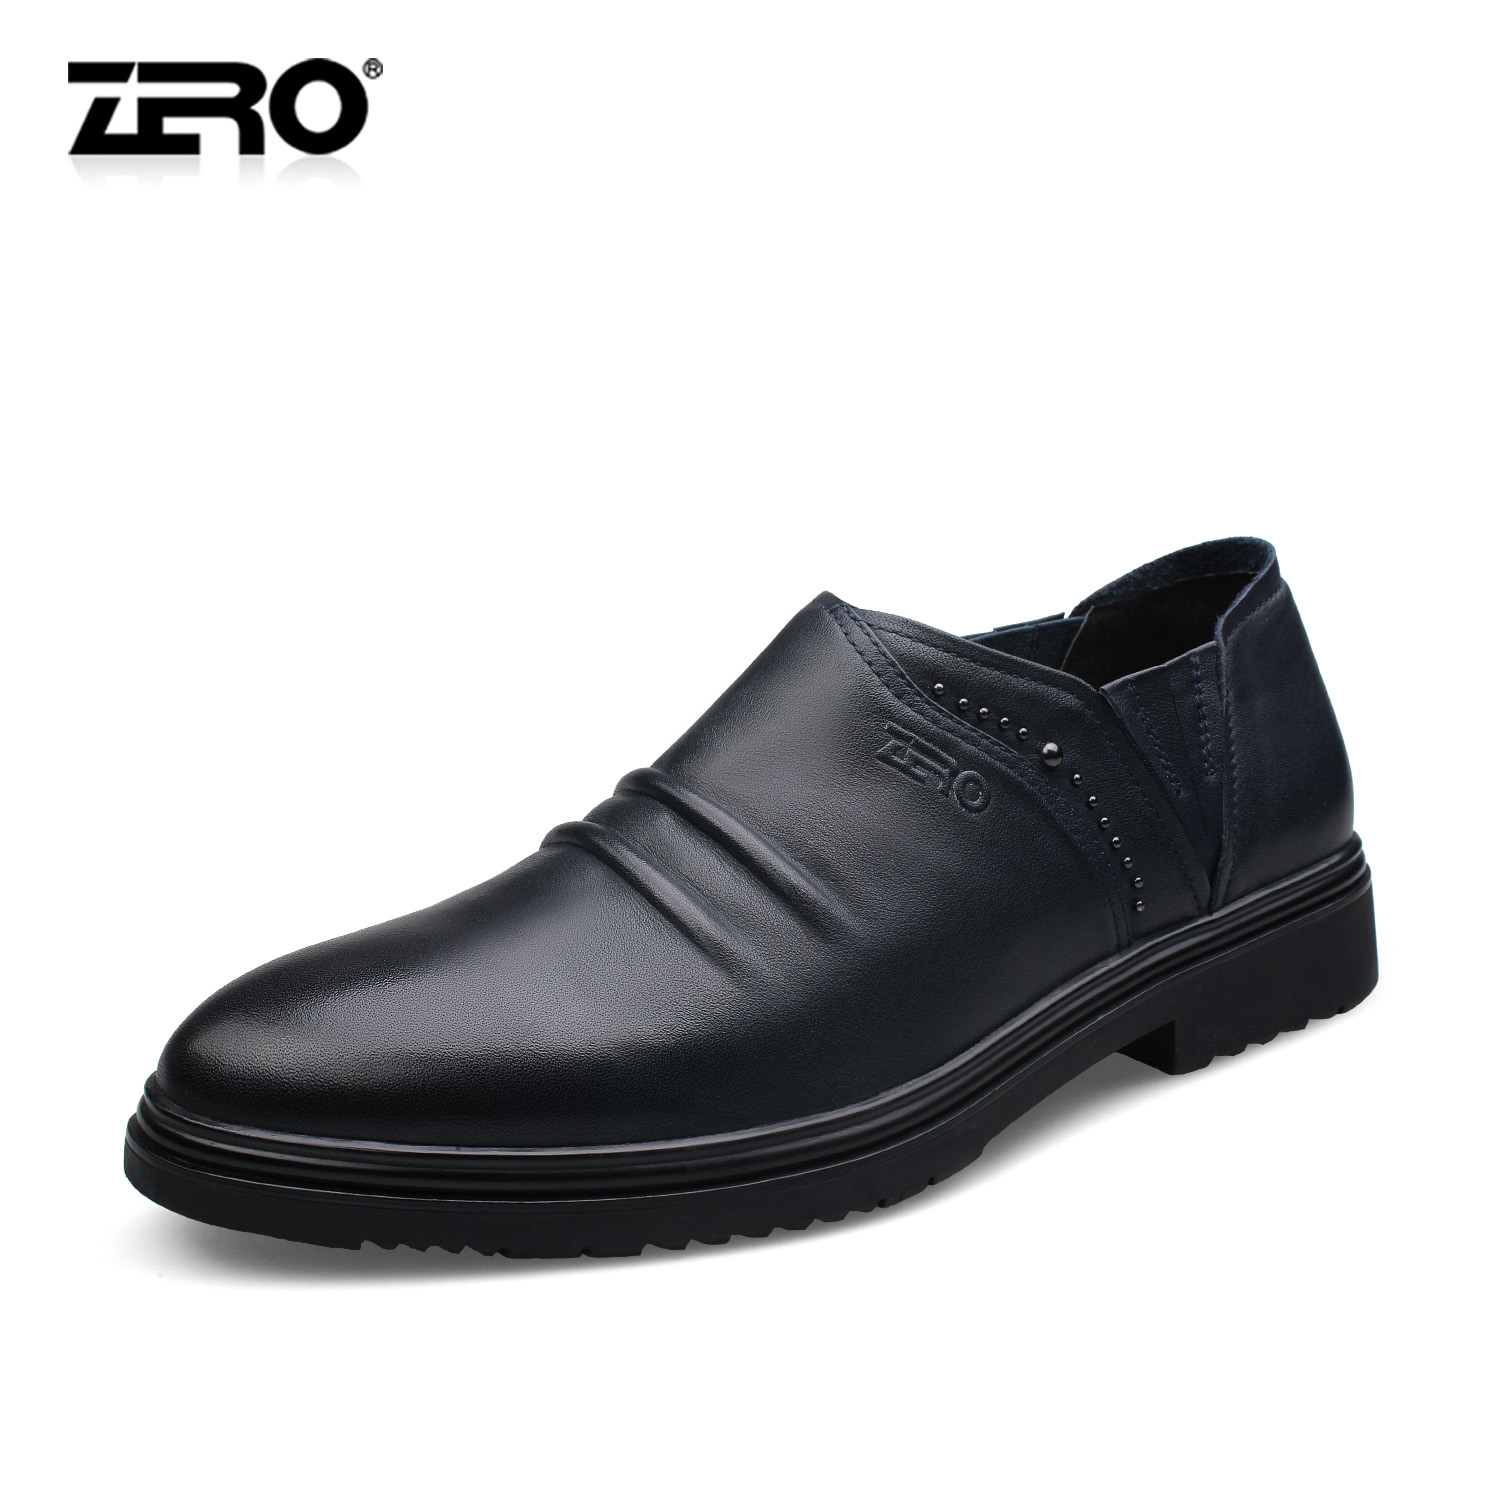 Zero zero autumn mens business casual shoes fashion leather soft soled leather shoes british male shoes